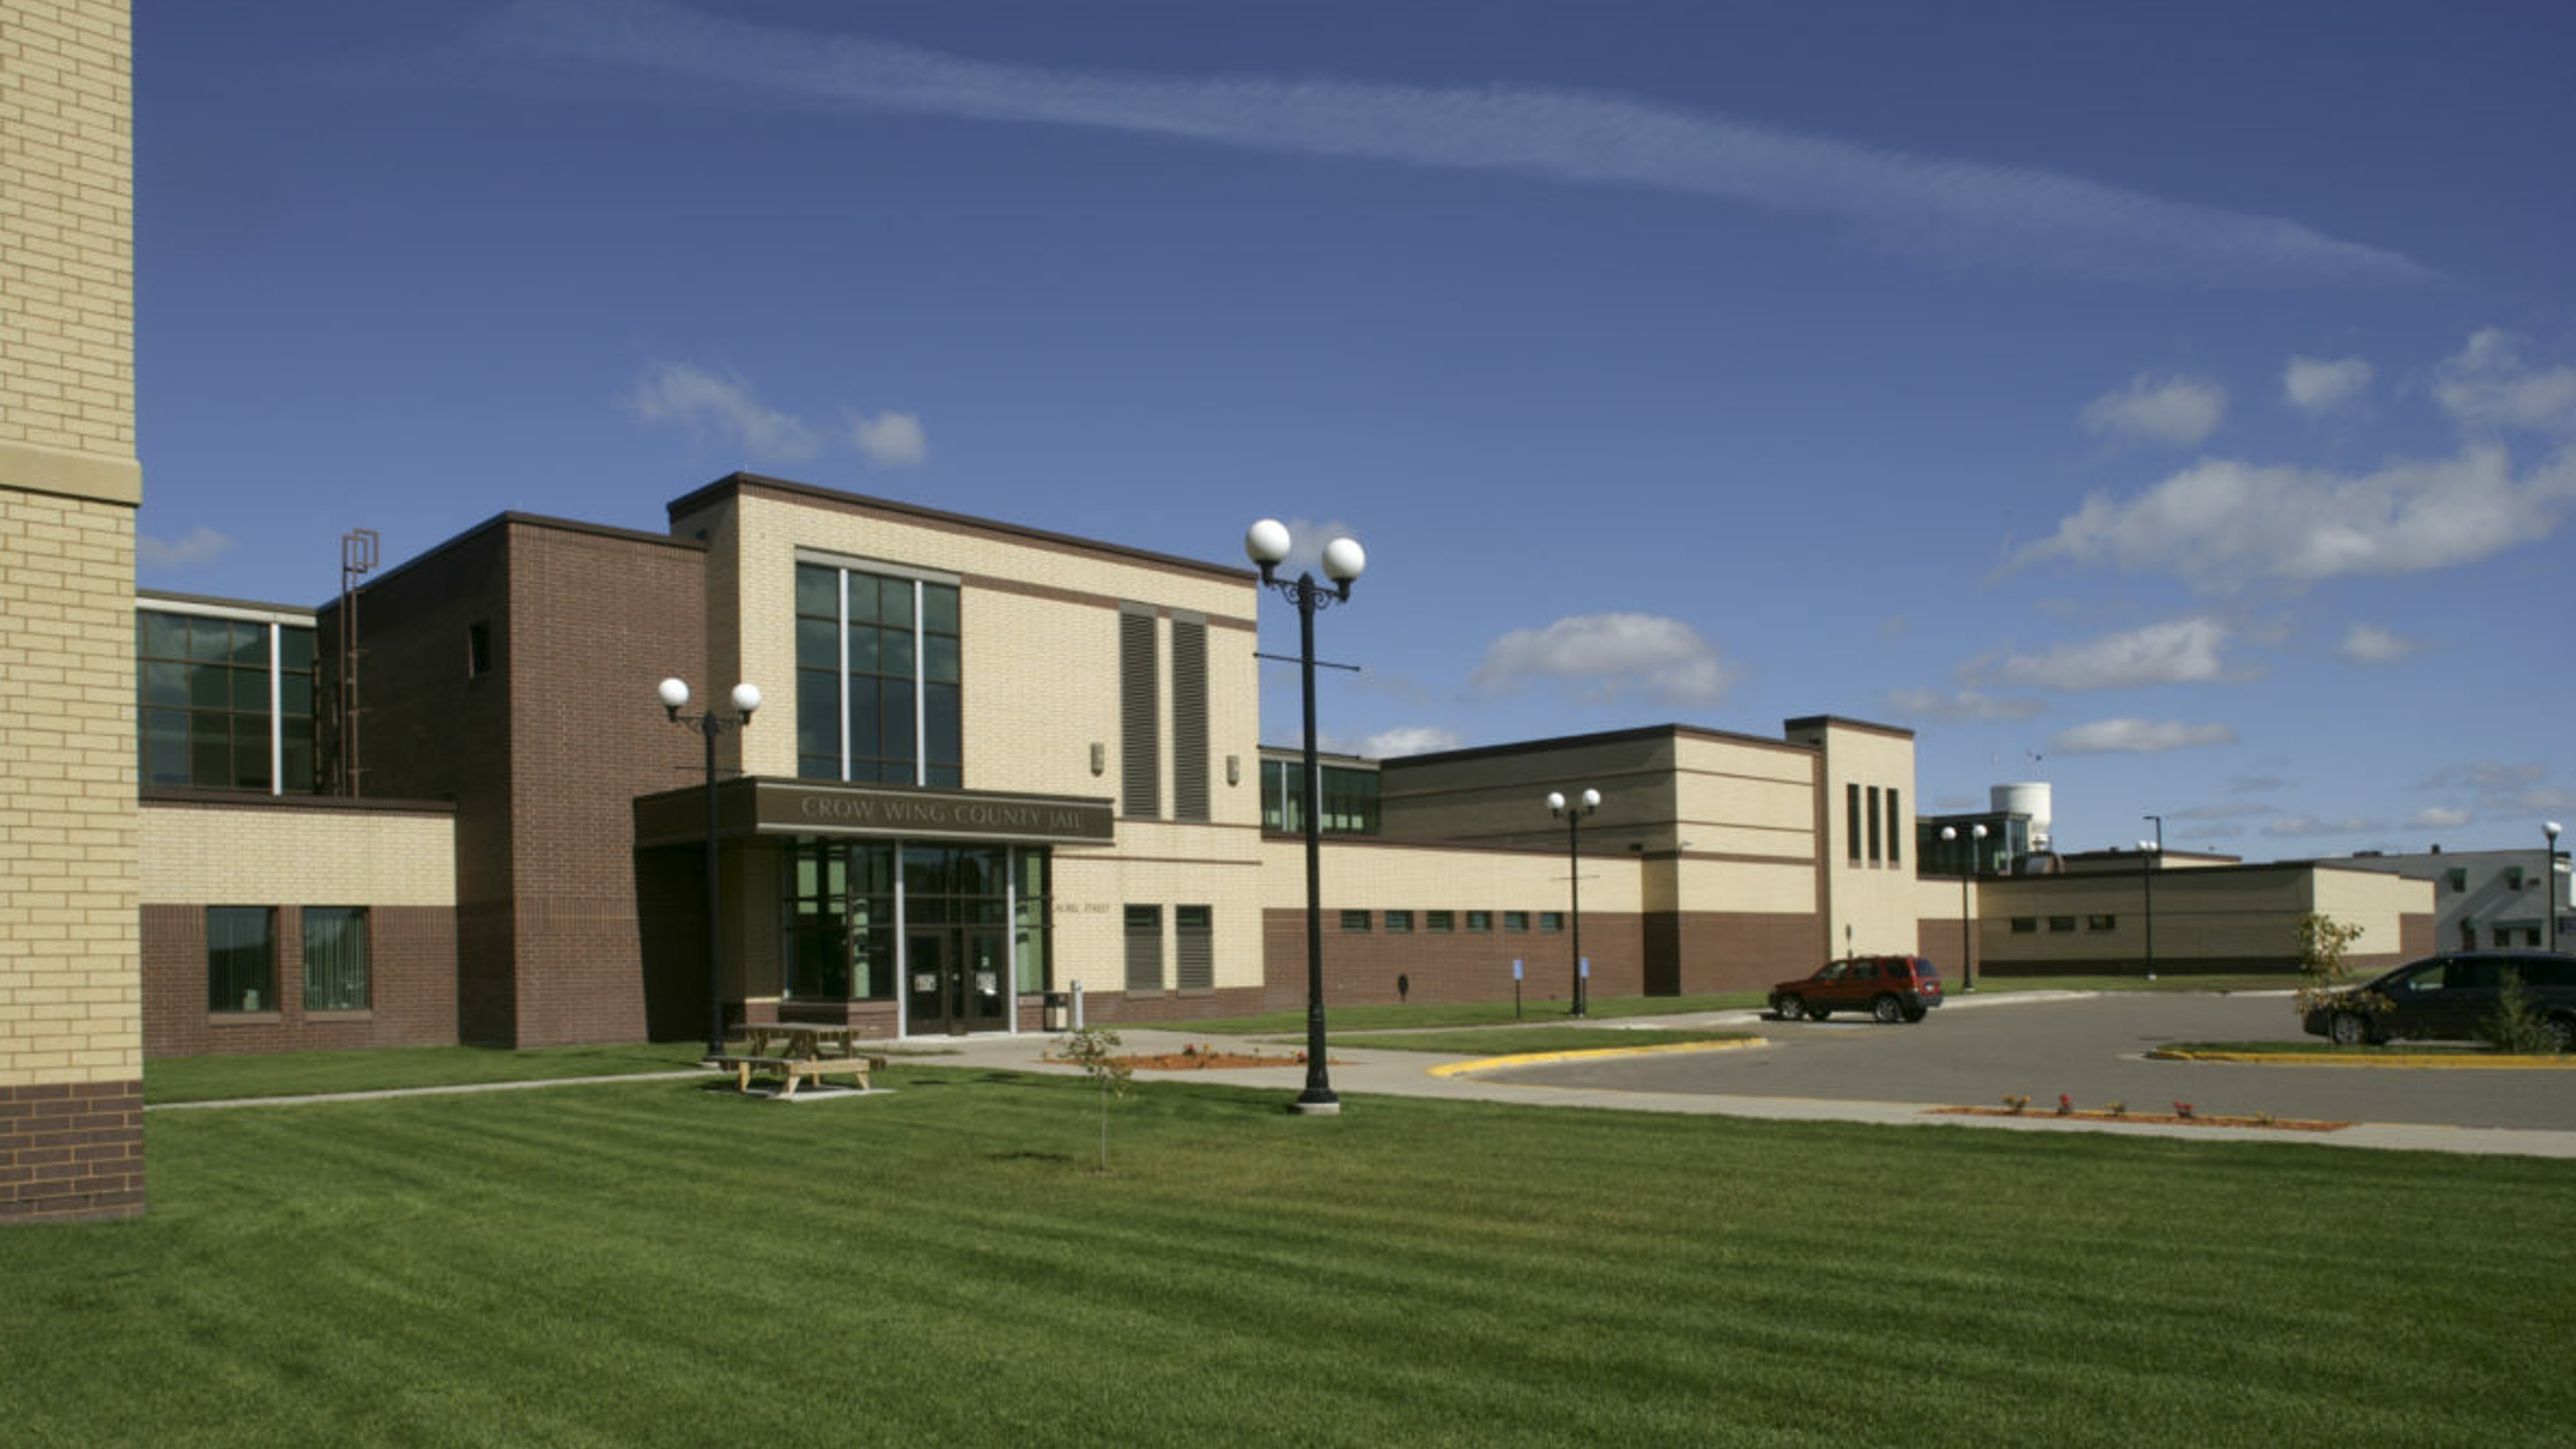 Crow wing county jail 7